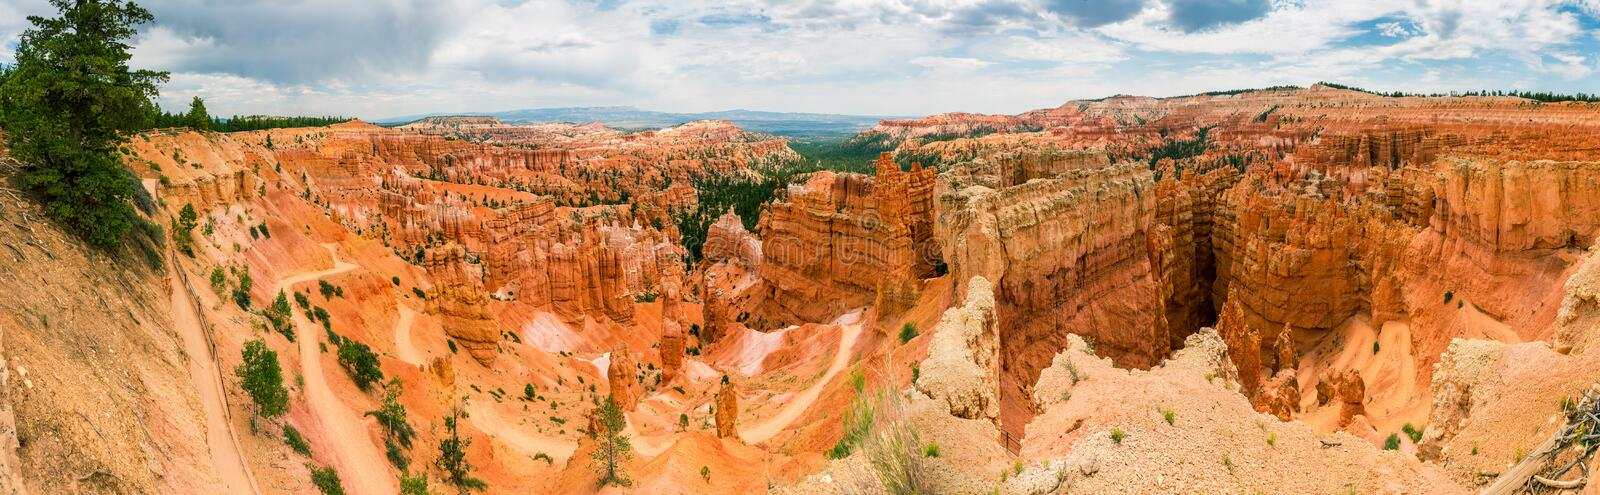 Desert canyons and gorges stock photos